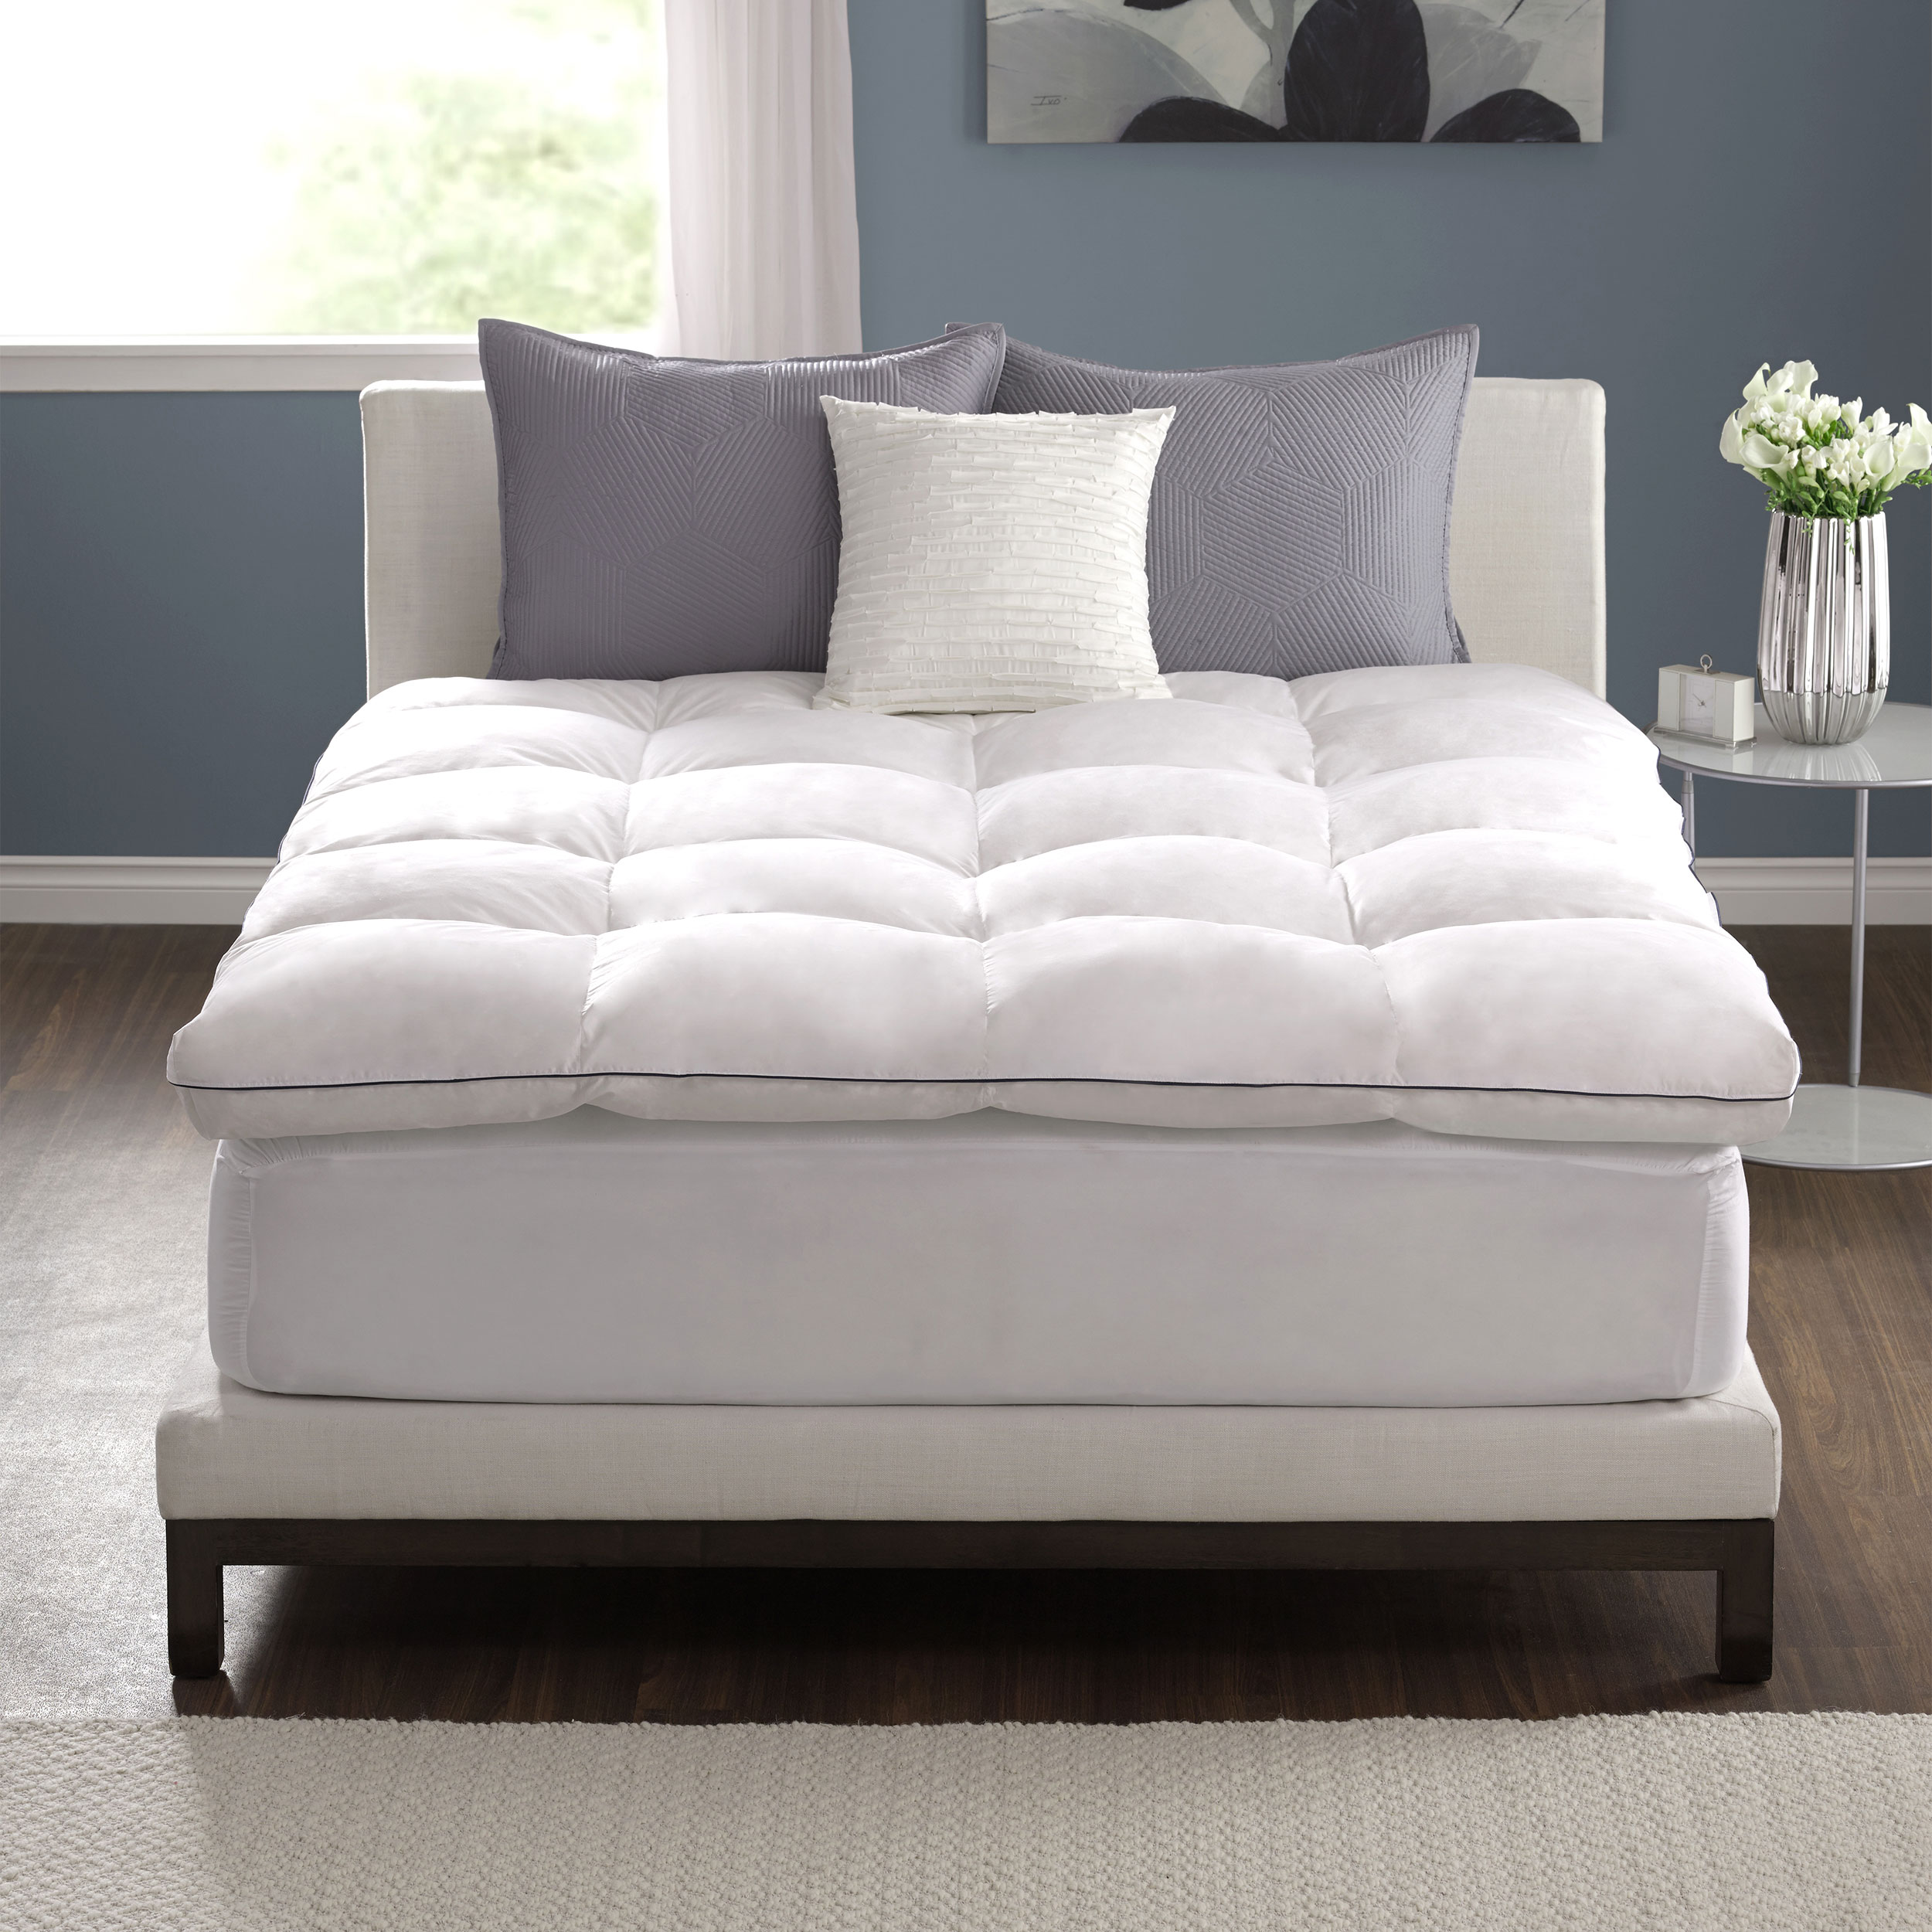 mattress toppers, mattress topper and mattress pads